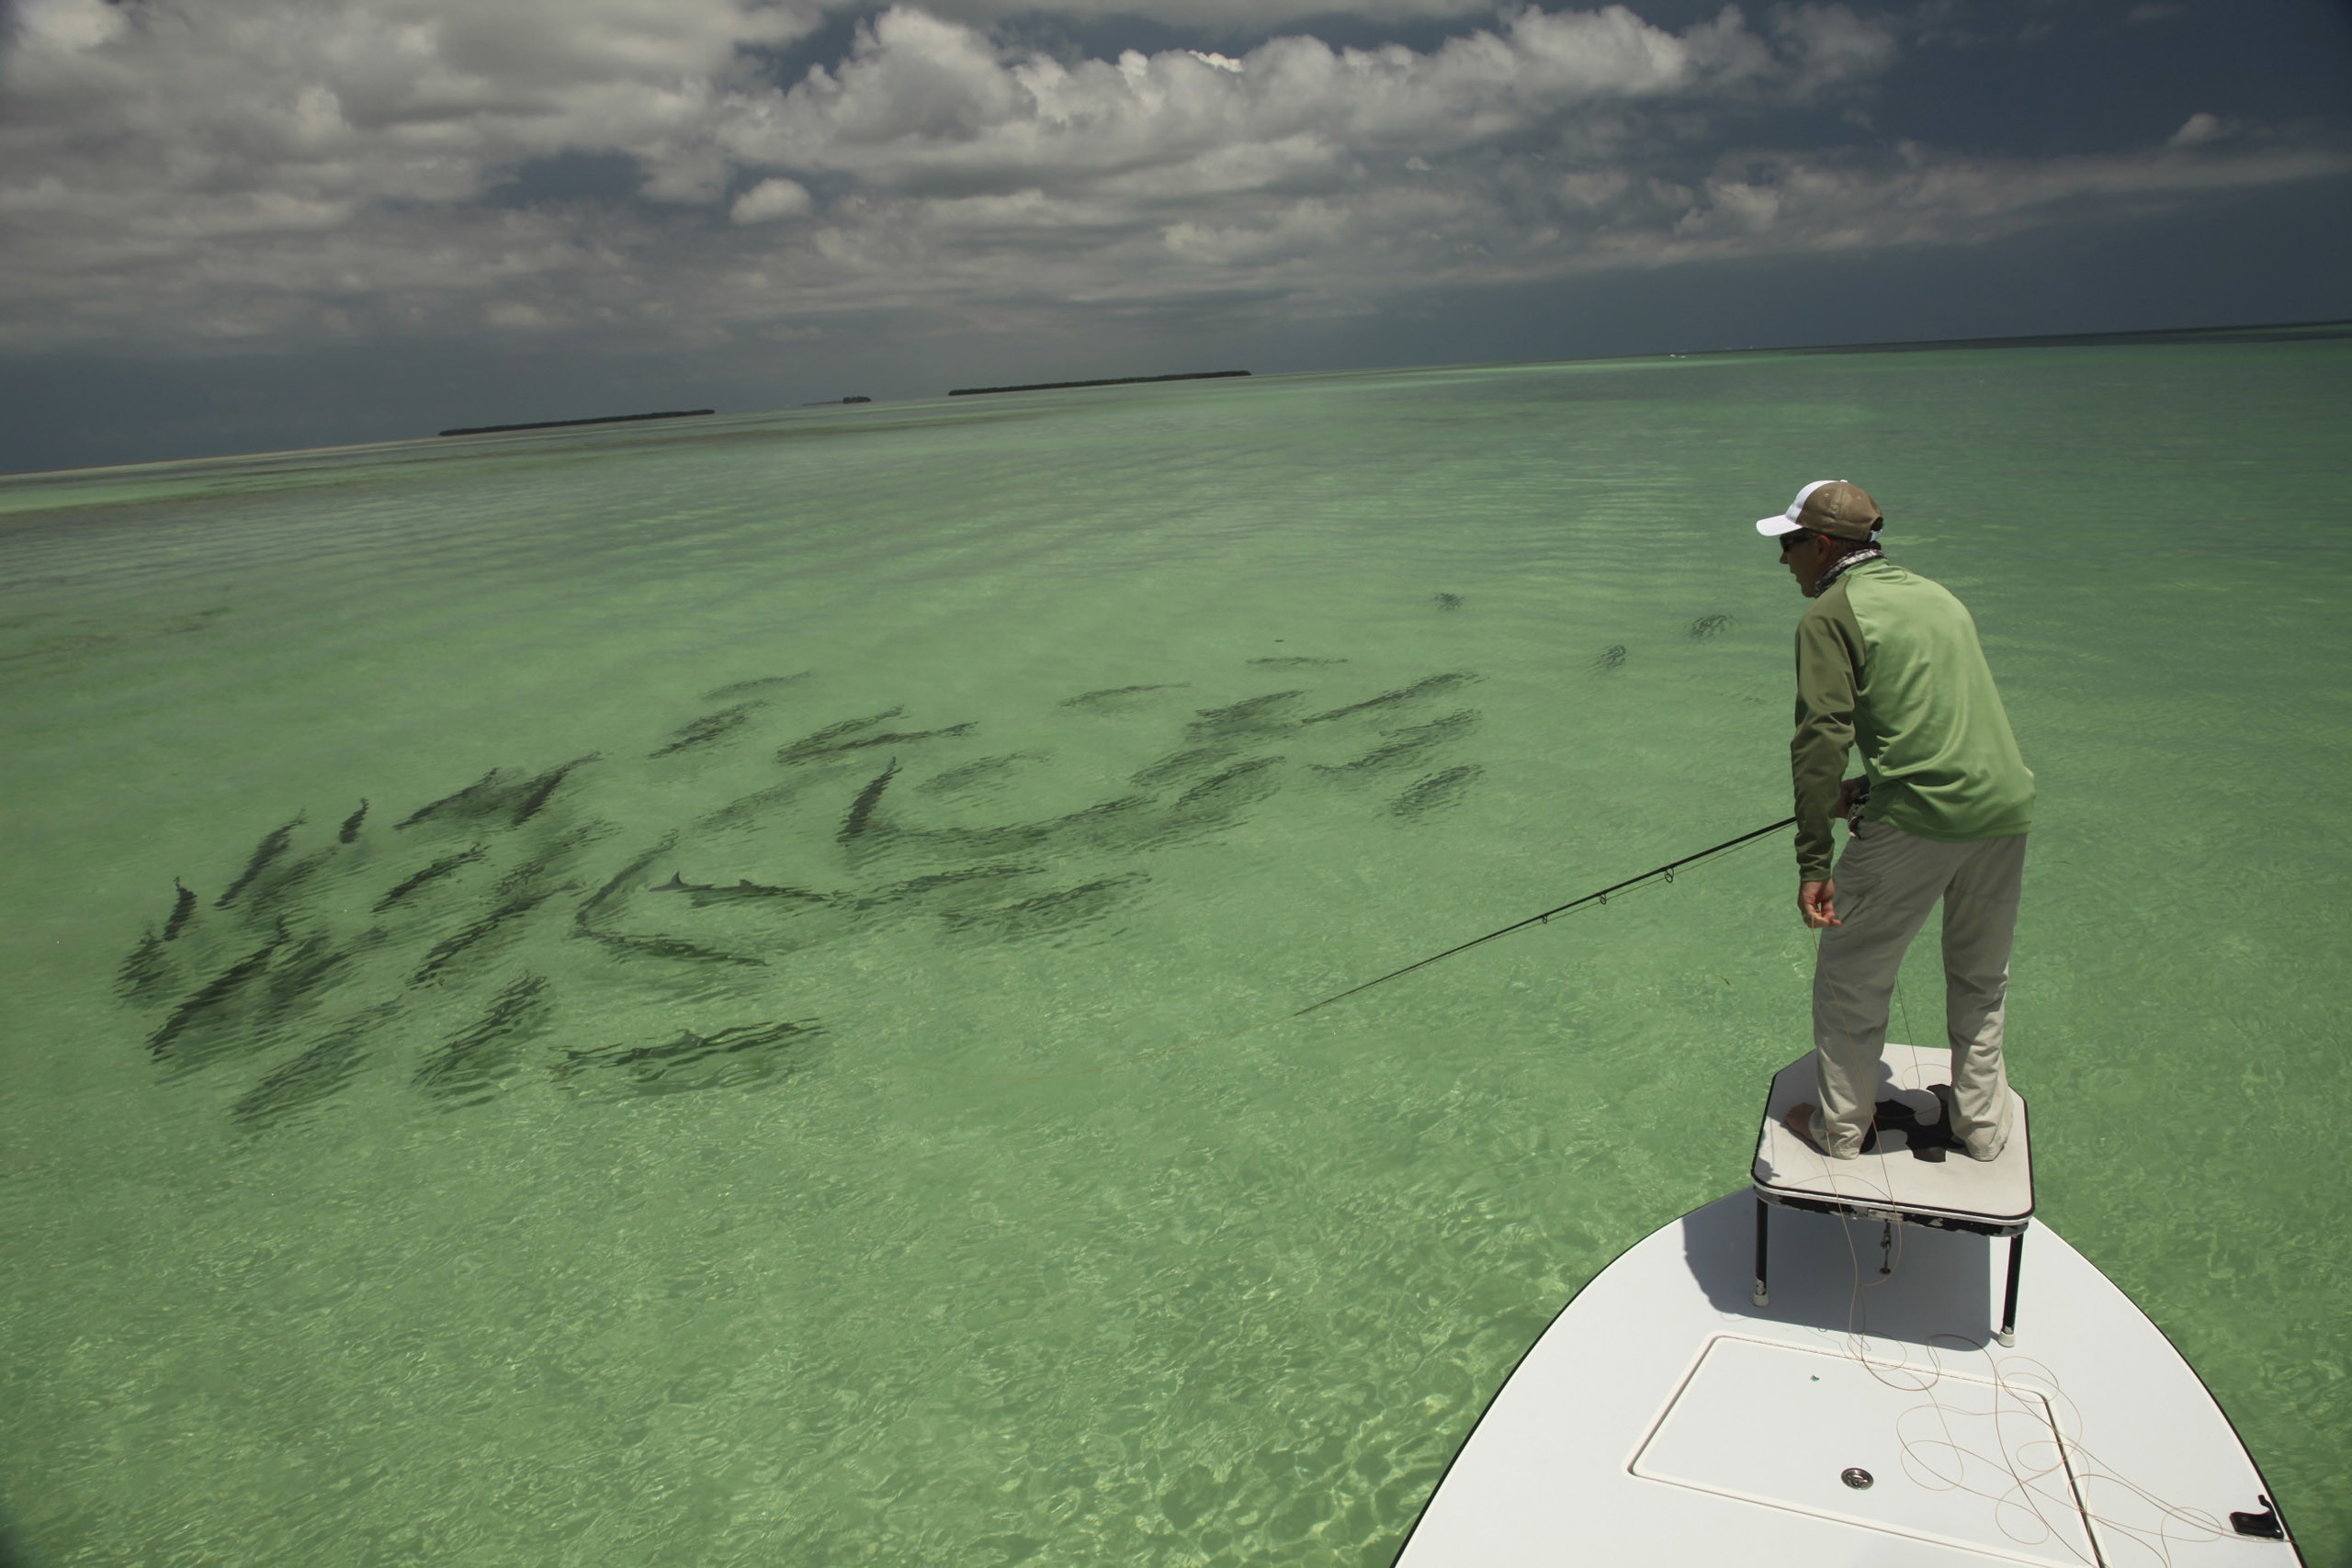 Res: 2560x1707, Back Pix For Saltwater Fly Fishing Art